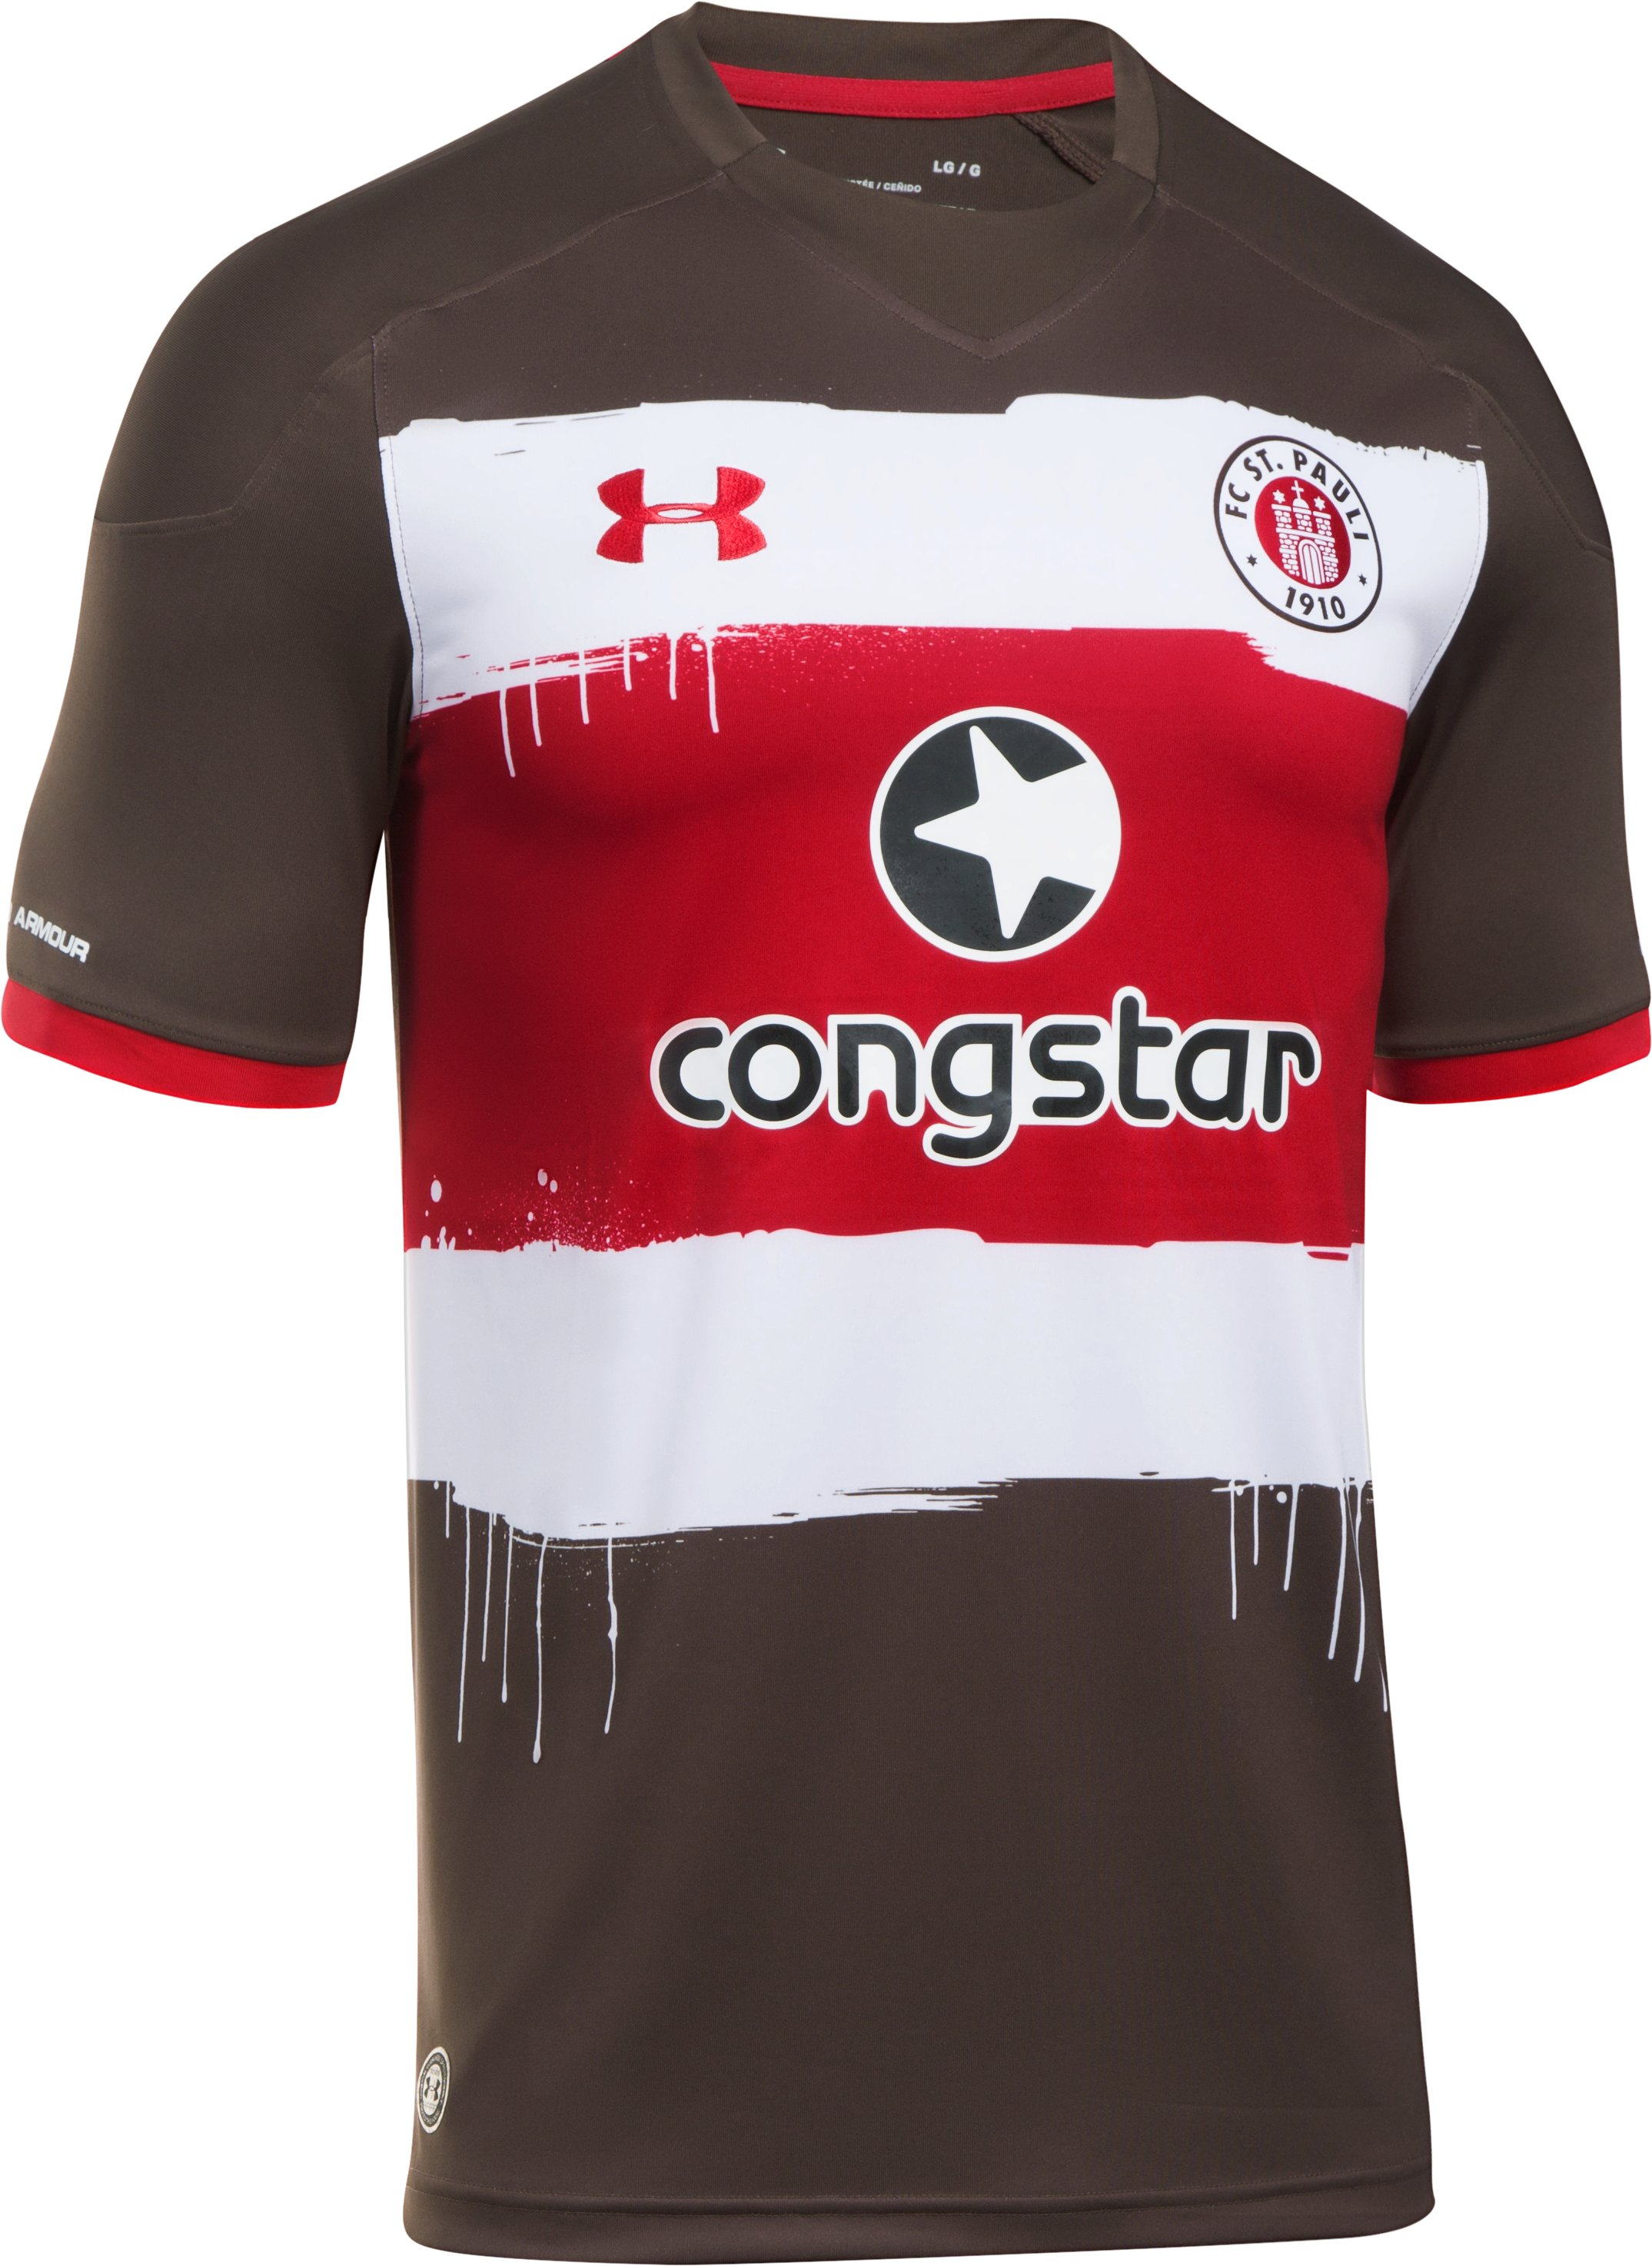 Men's St. Pauli Replica Jersey, Timber,